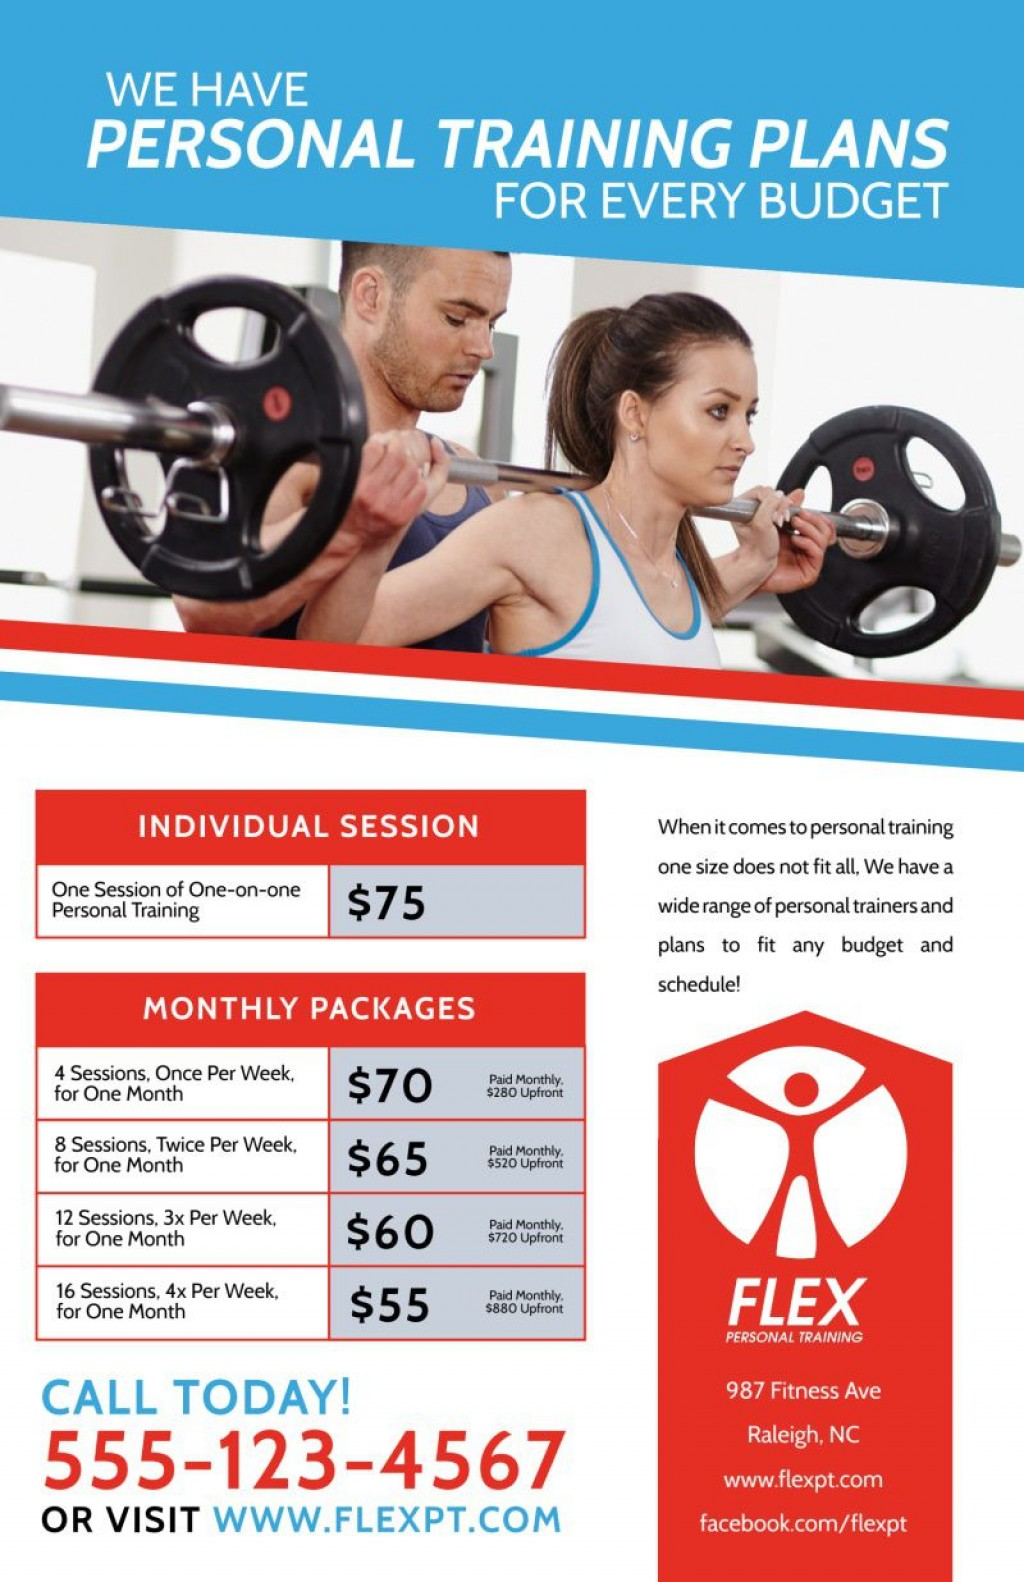 008 Fantastic Personal Trainer Flyer Template Example  Word PsdLarge